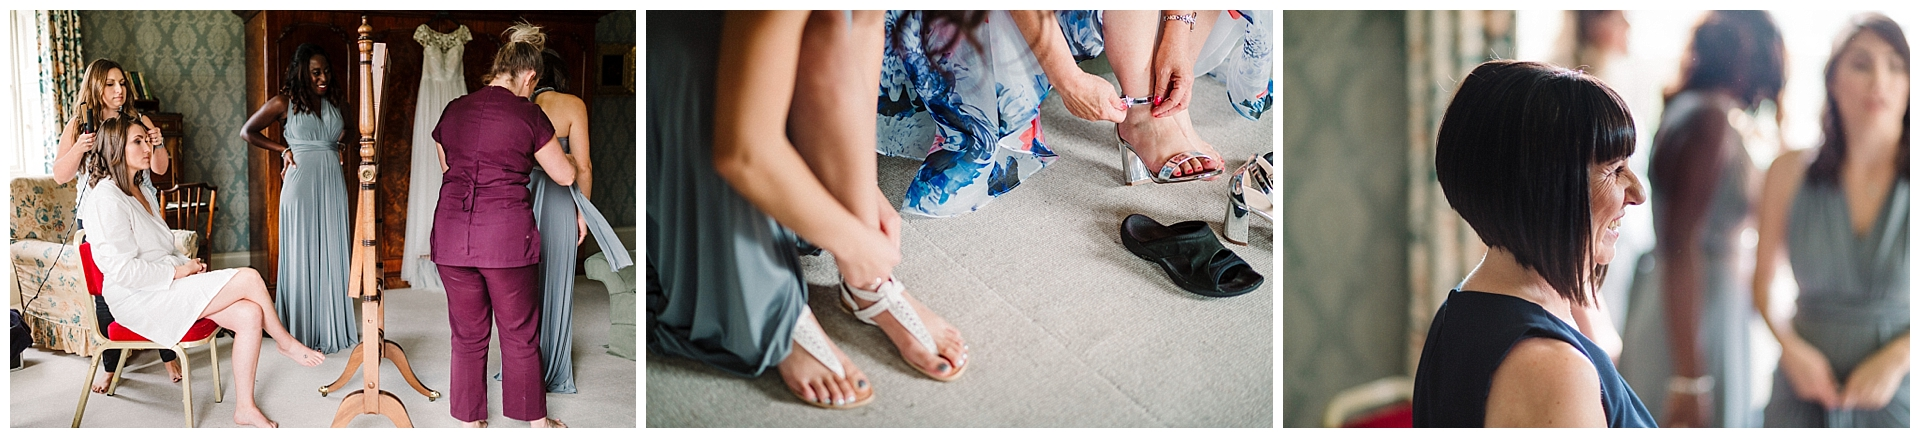 bridal party getting ready in the bedroom at scampston hall